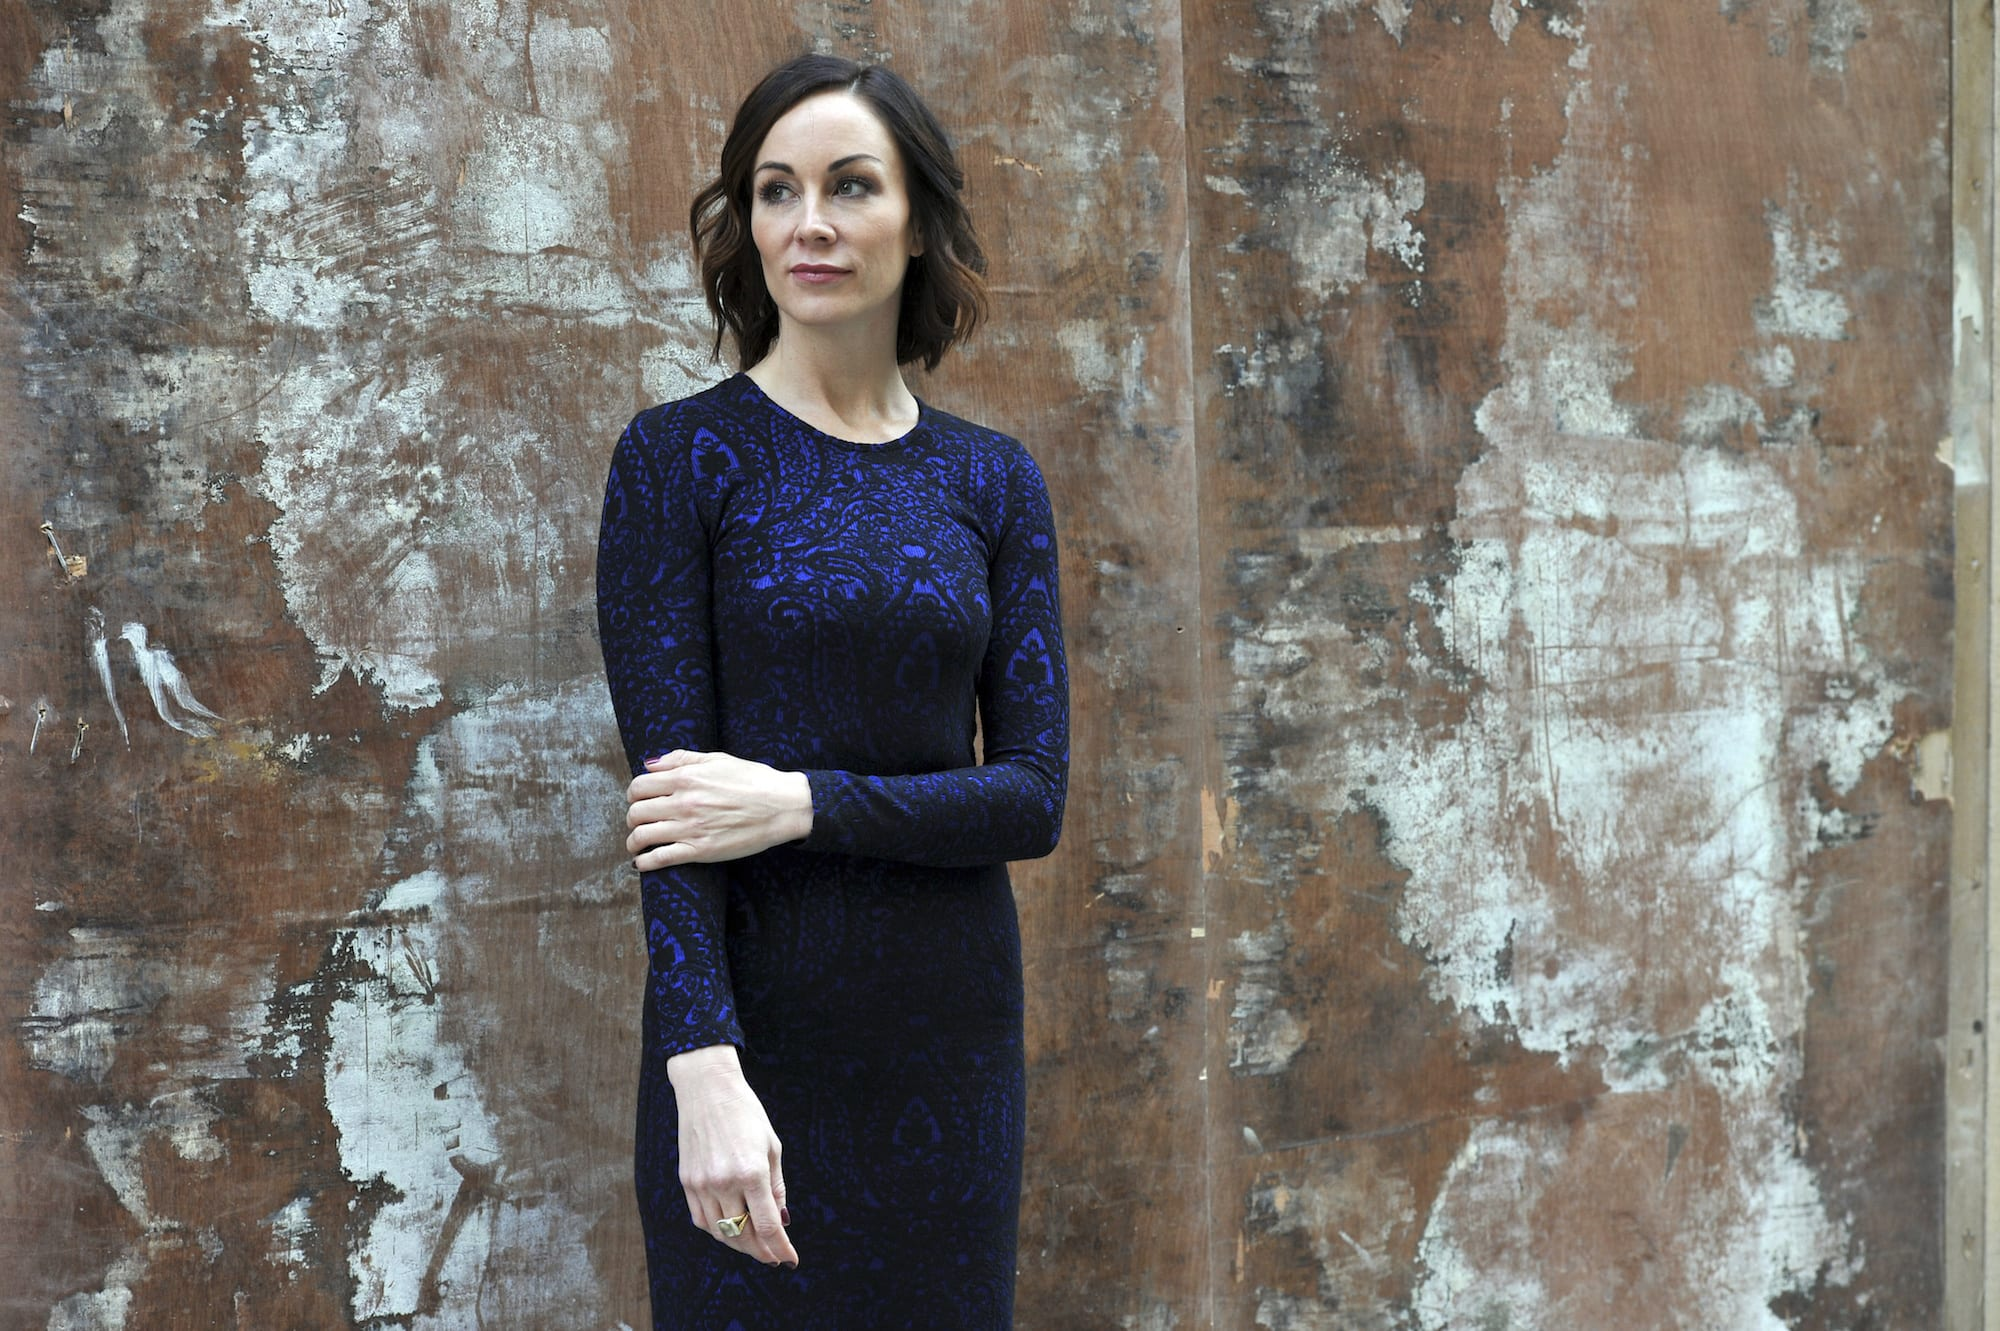 Amanda Lindhout © | Eric Hadj/Paris Match via Getty Images